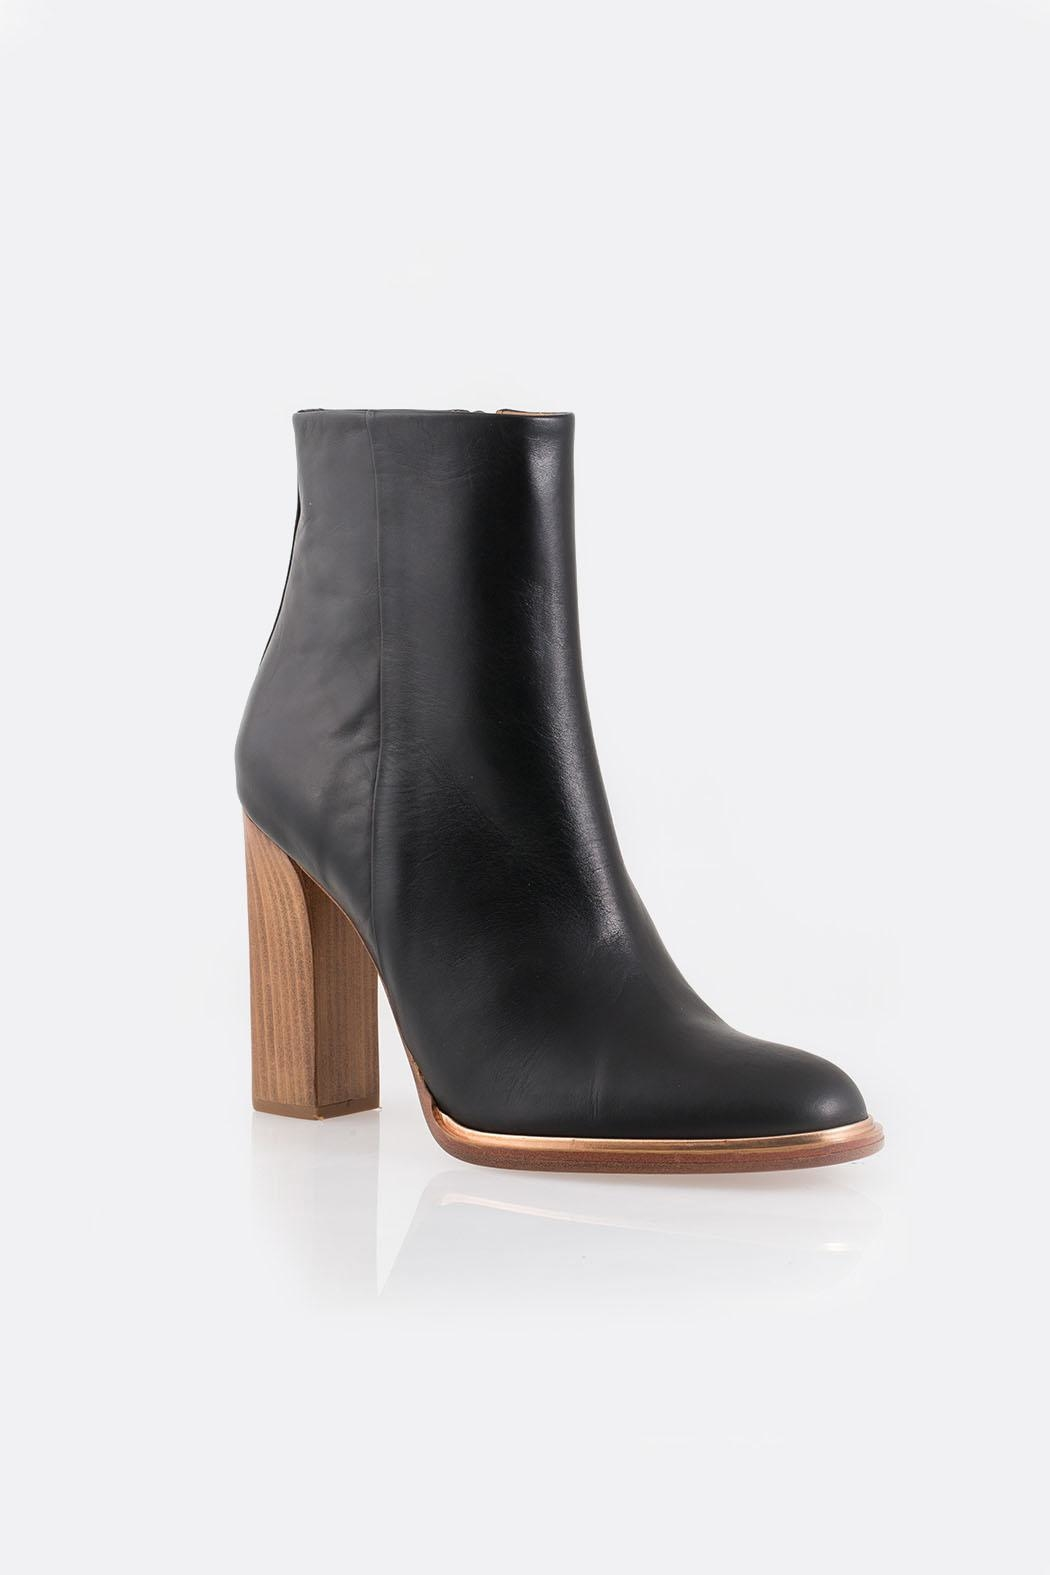 Veronique Branquinho Black Heeled Bootie - Side Cropped Image